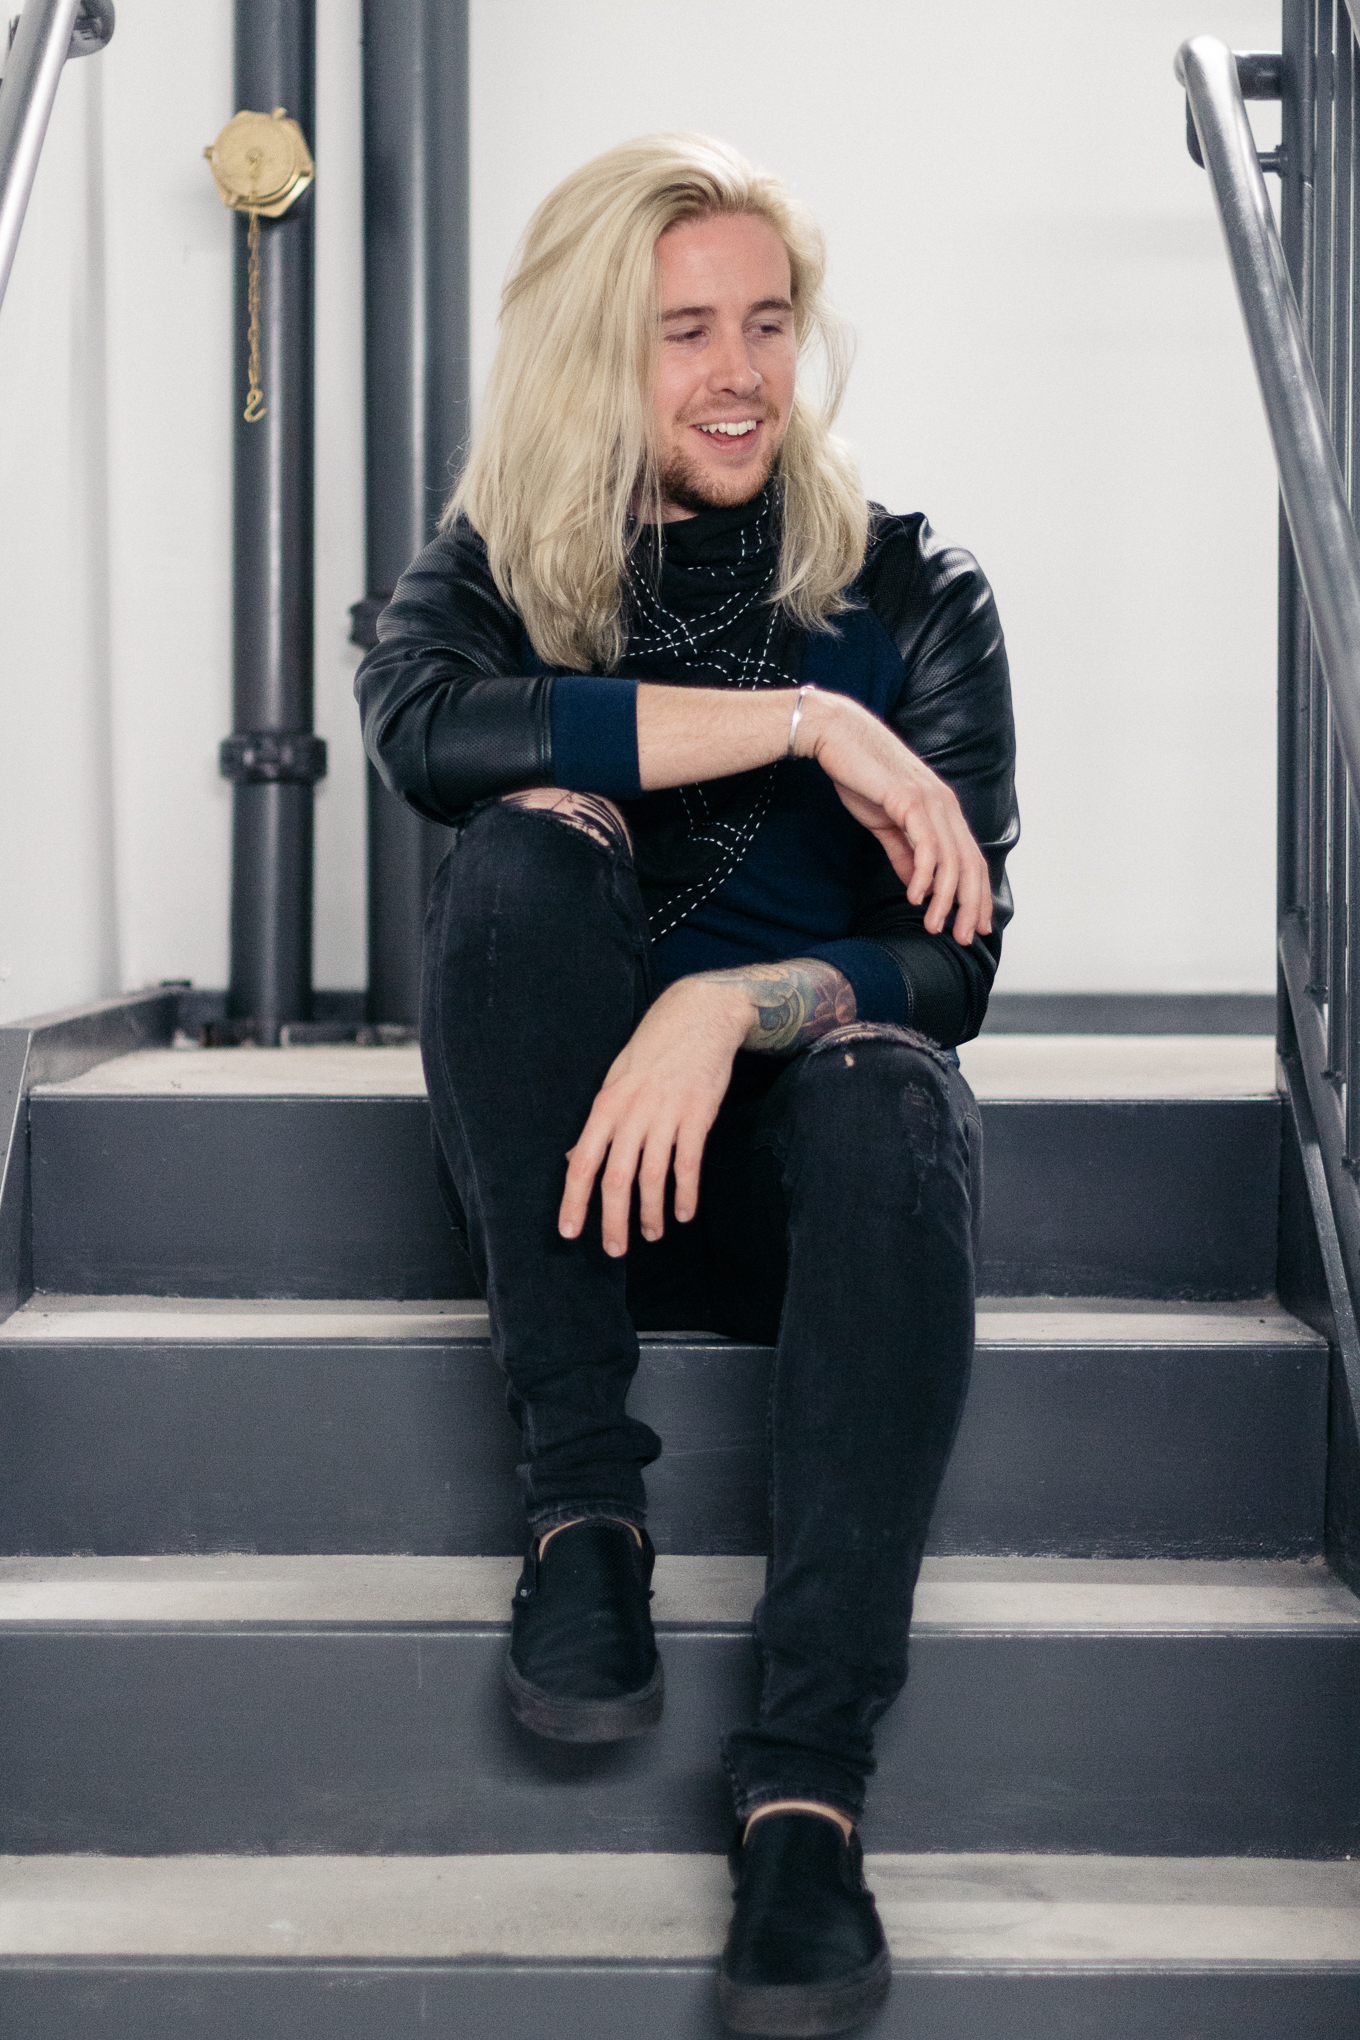 urban outfitters, anchal project, mens fall fashion, aloft hotel louisville, men with platinum blonde hair, aloft louisville